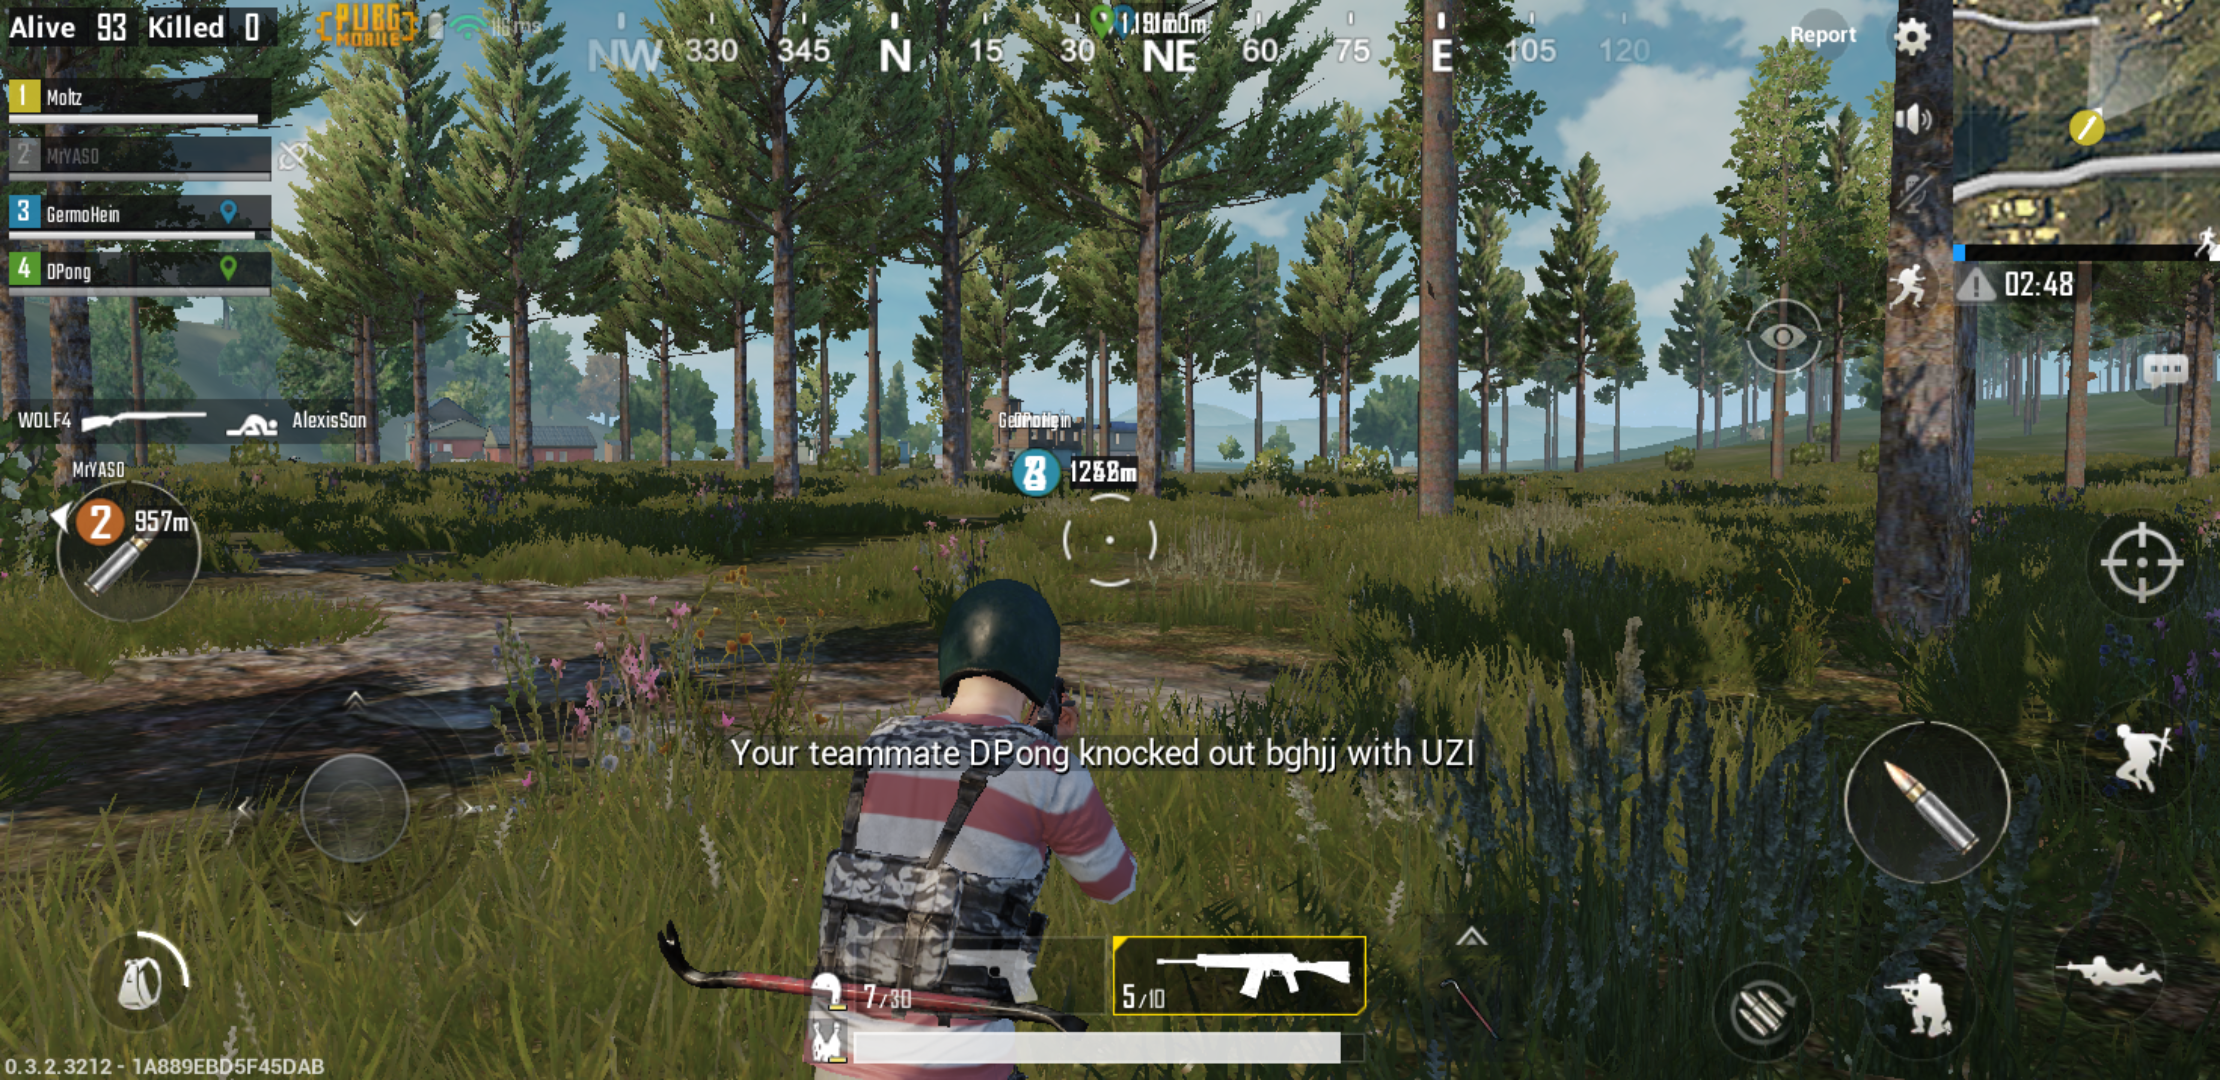 Hands-on] PUBG Mobile, a fun battle royale game that is